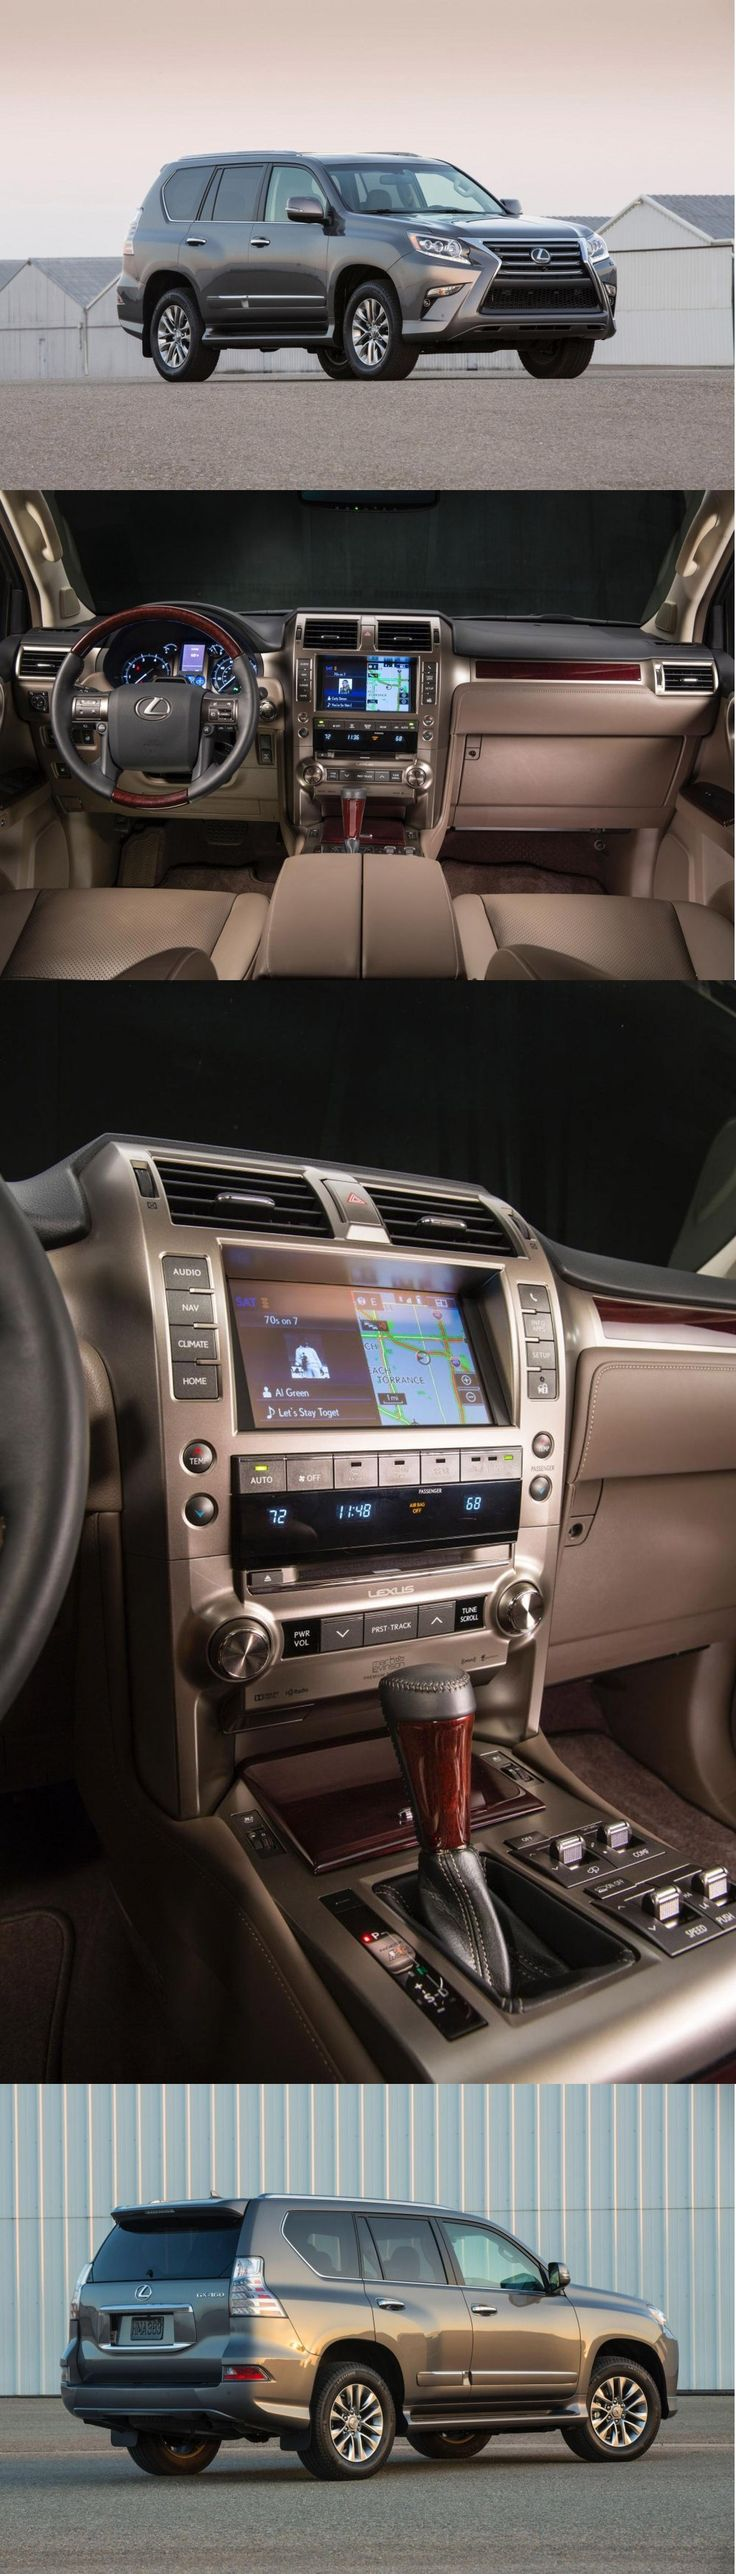 Lexus GX 460. All the bells and whistles.